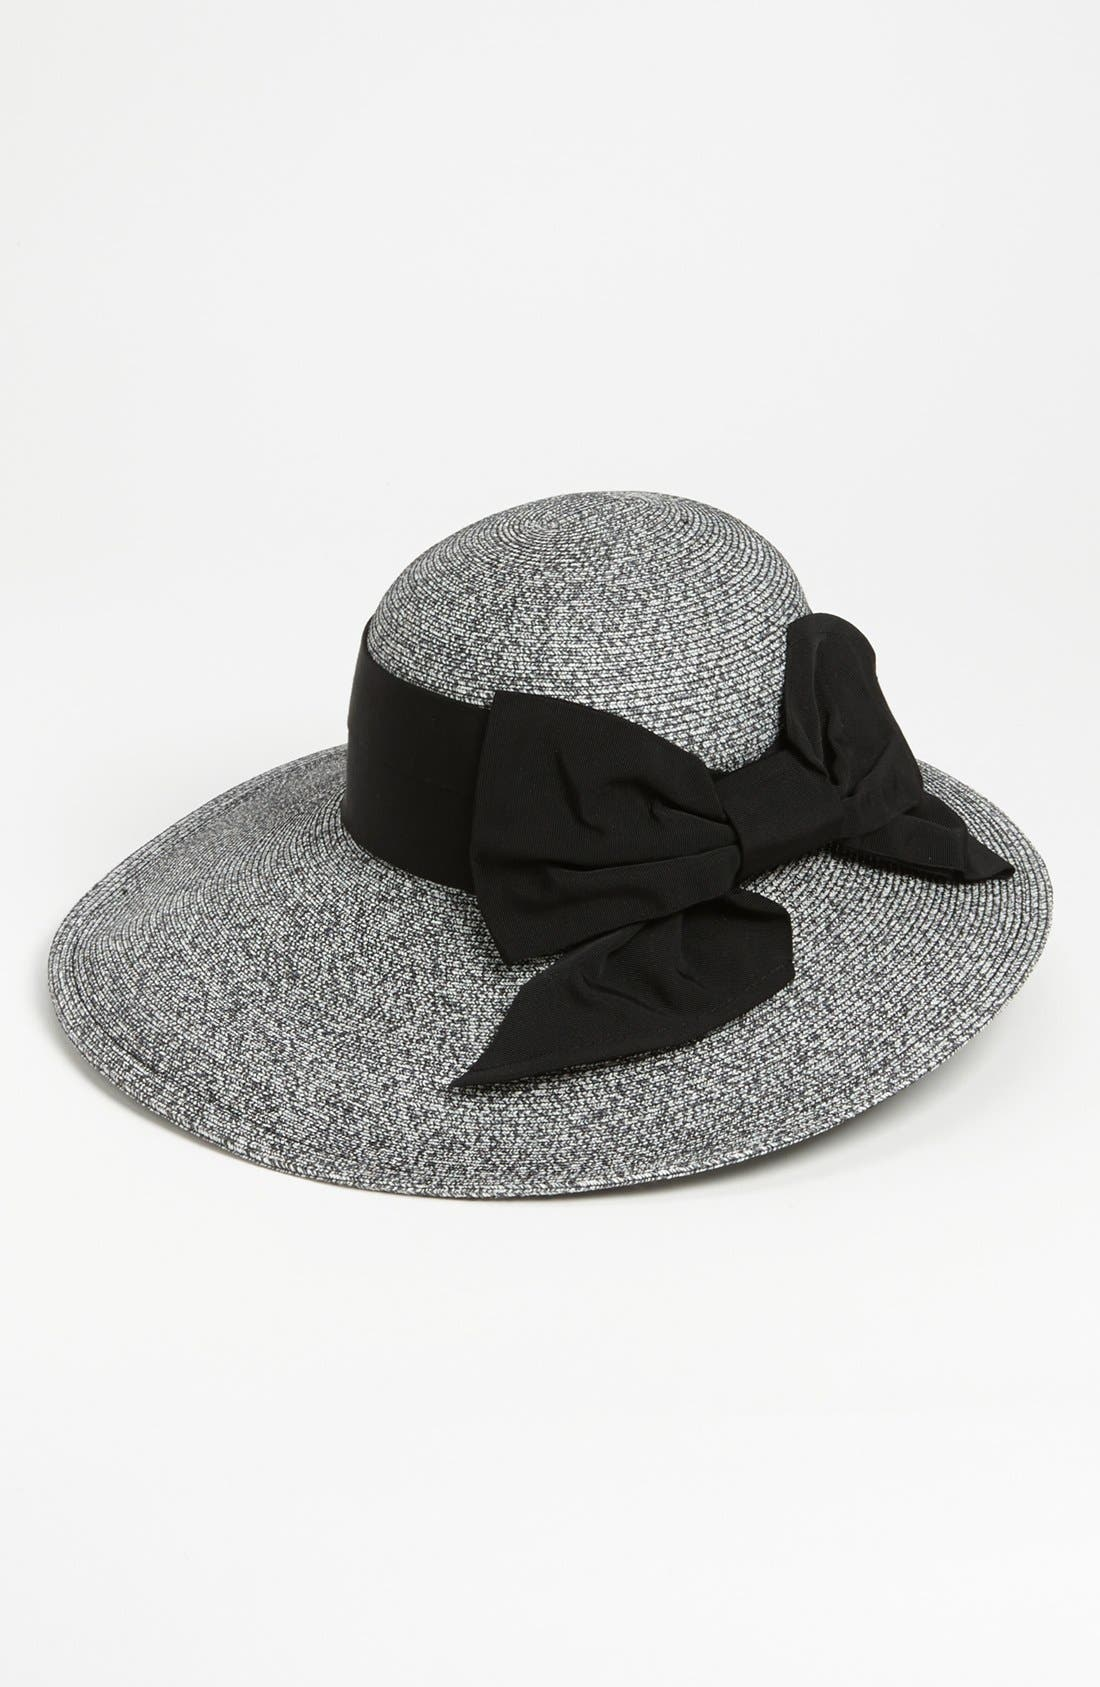 Main Image - Nordstrom Asymmetrical Straw Hat